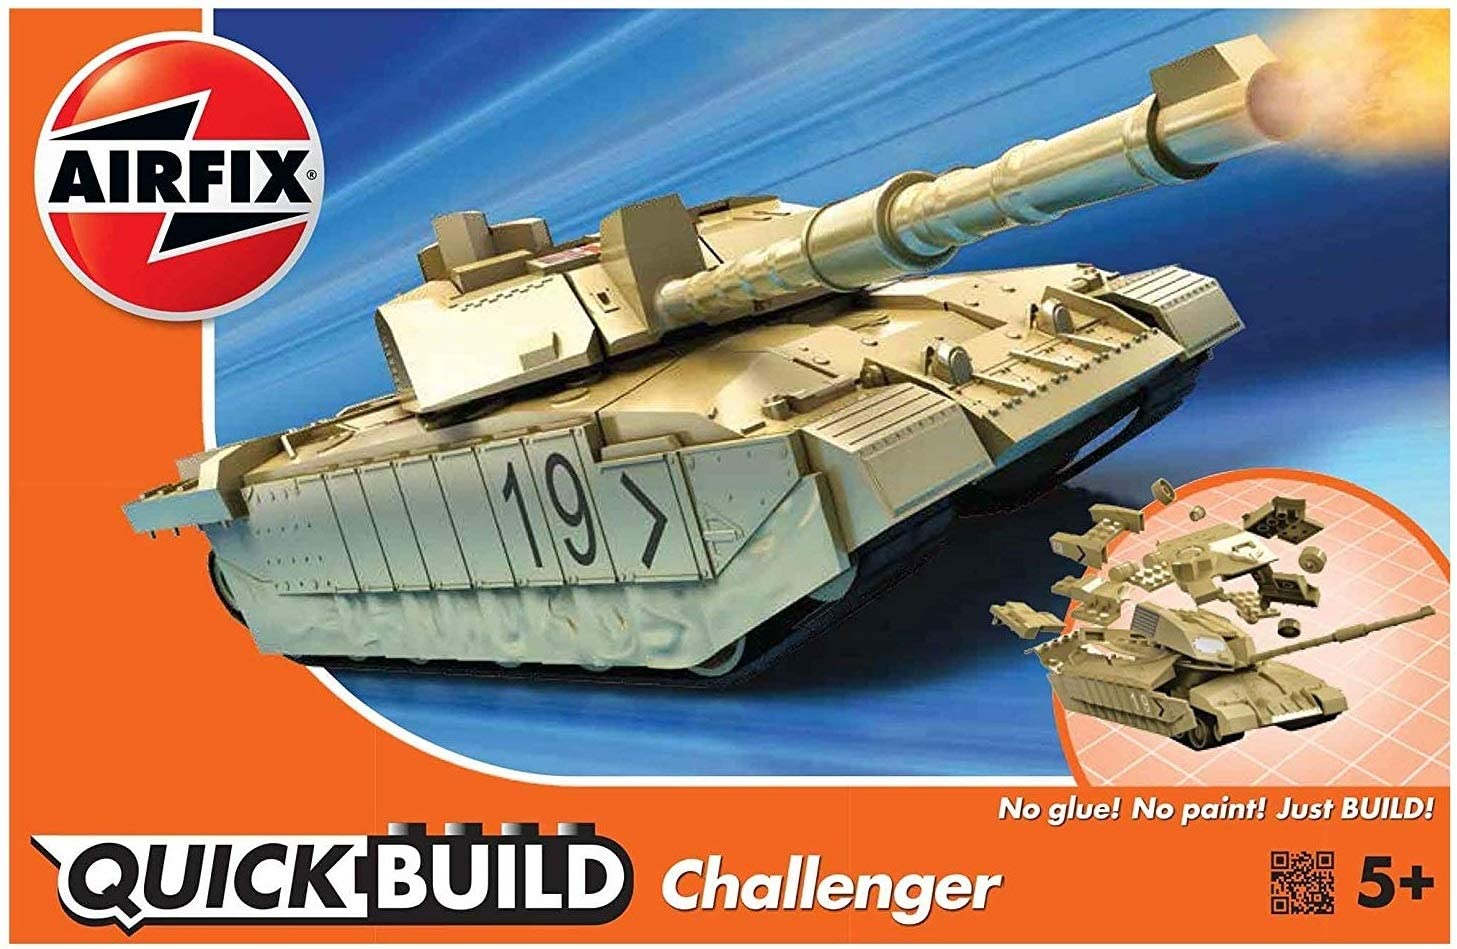 AIRFIX Plastic Model Kit Quick Build Challenger Tank (J6010)